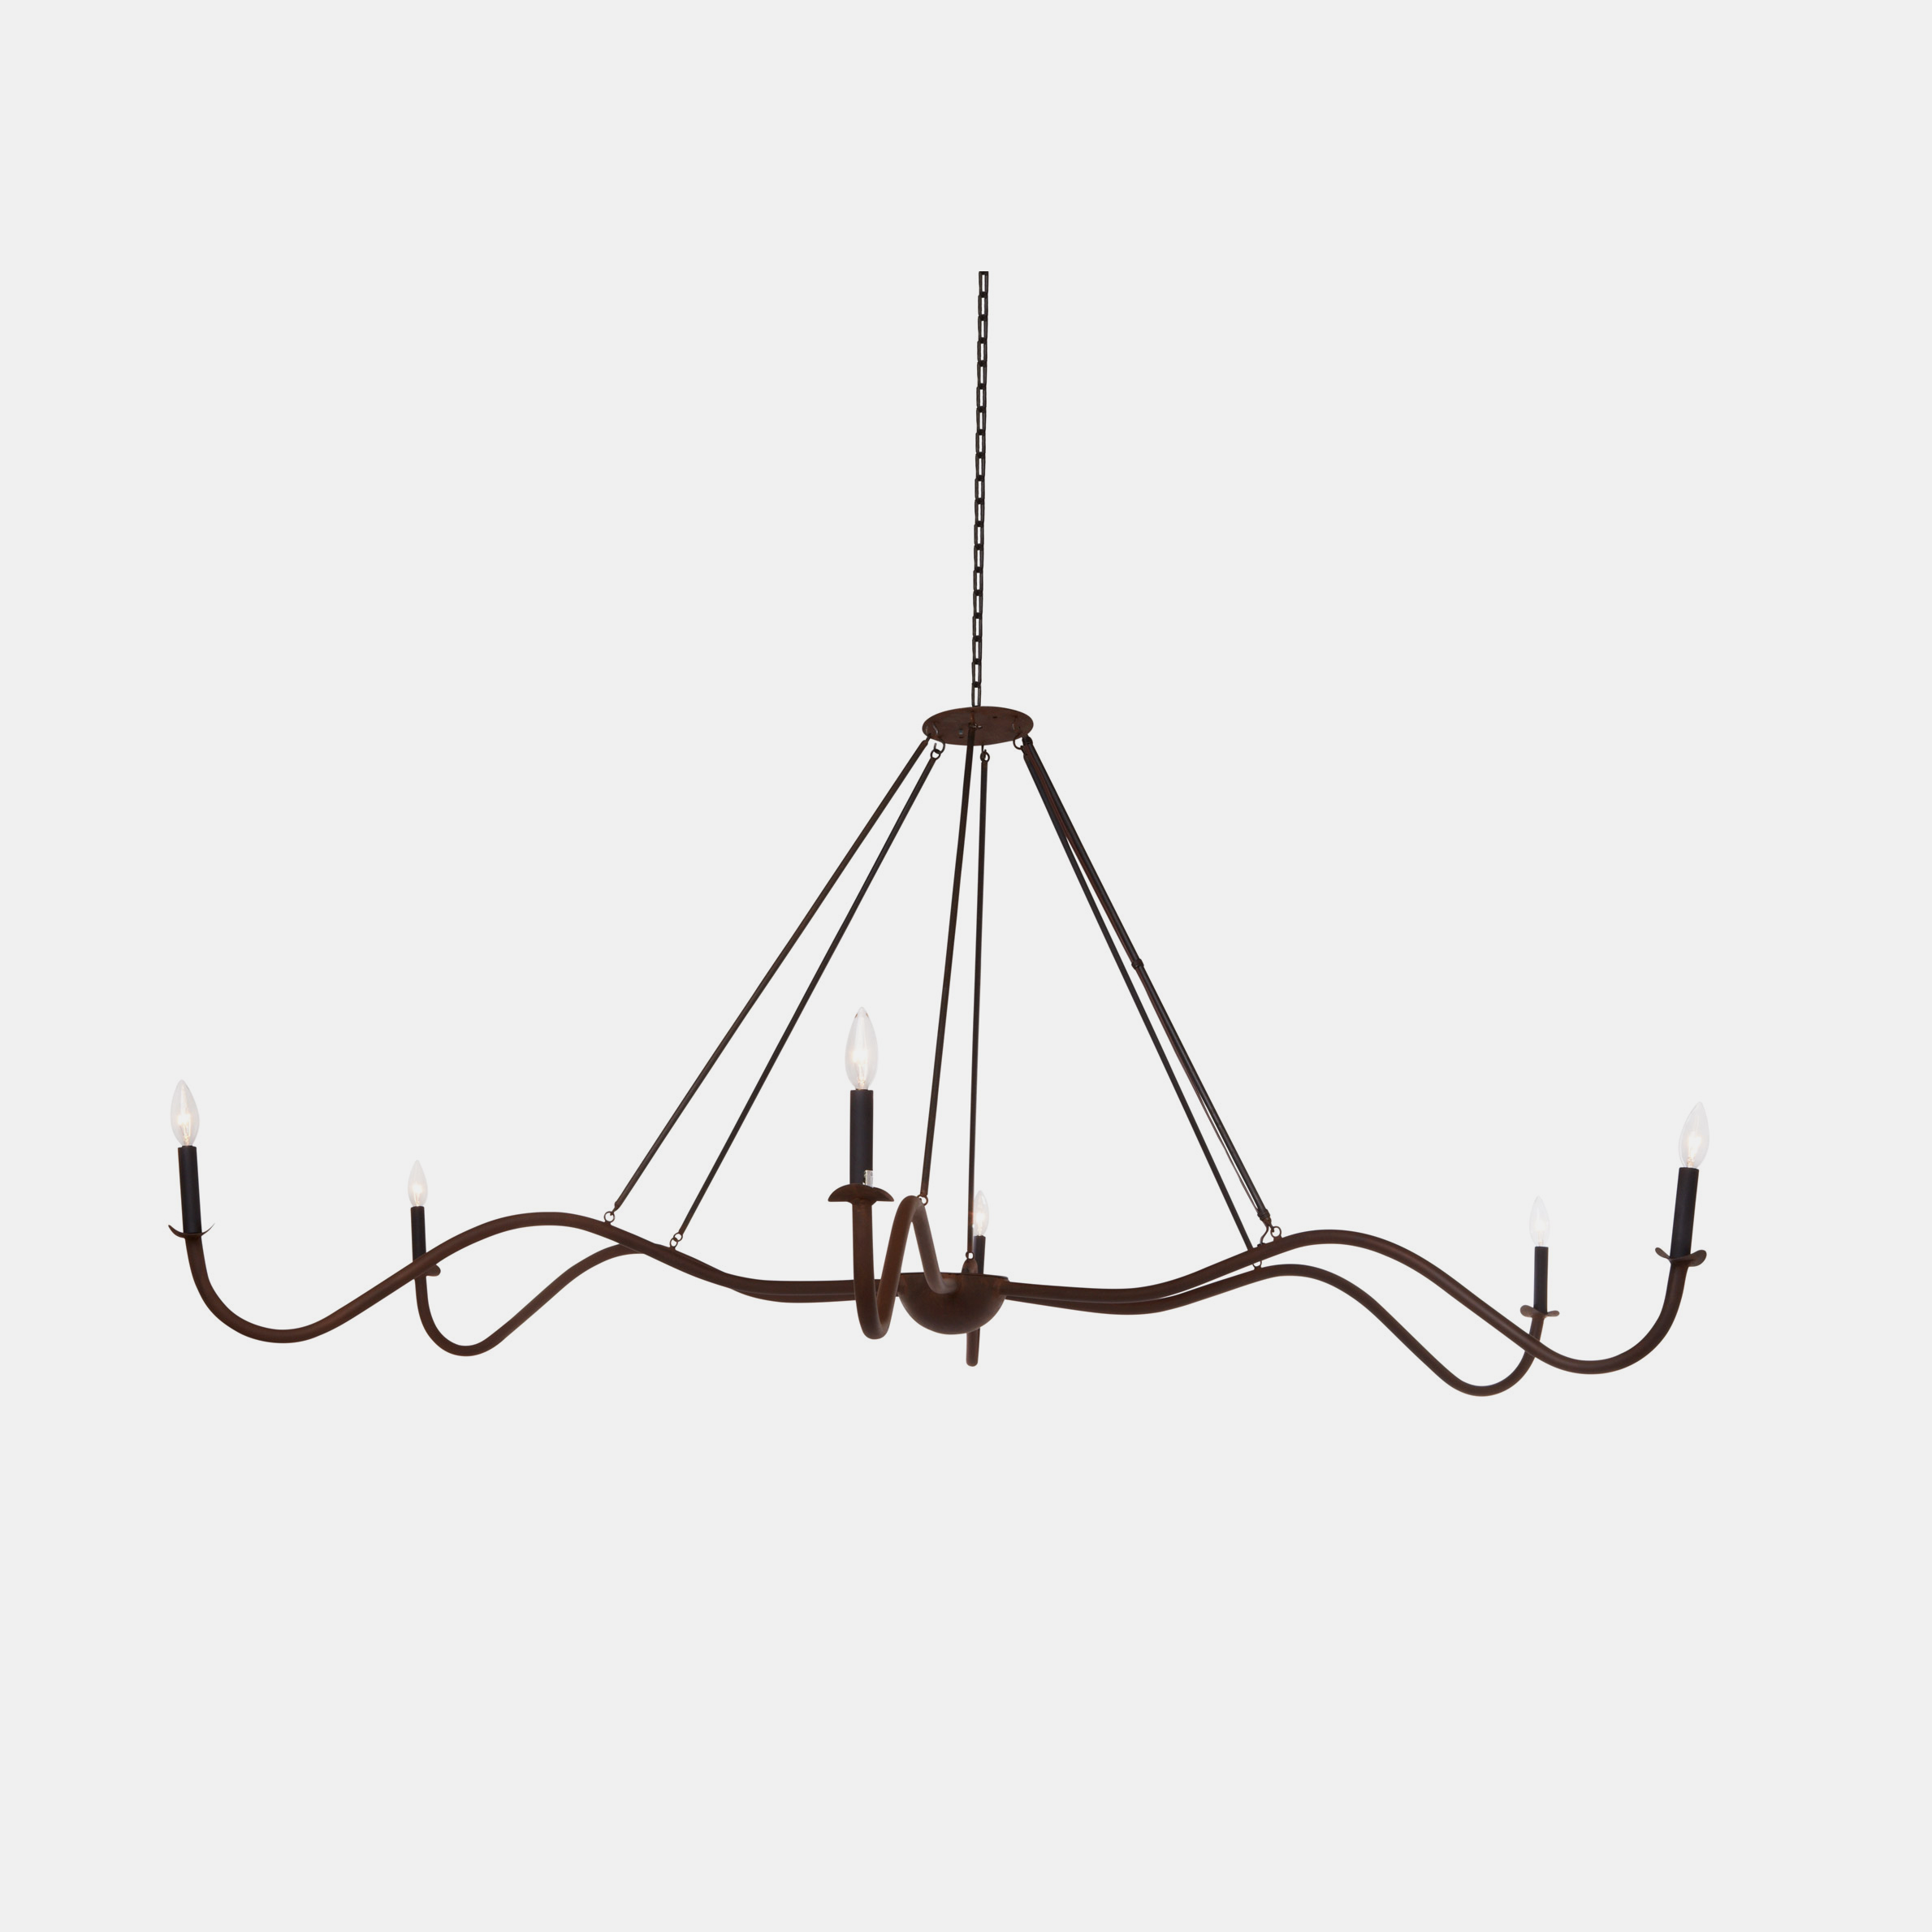 "Spider Chandelier  Small:   36""w x 36""d x 36""h  Medium: 48""w x 48""d x 36""h Large: 72""w x 72""d x 36""h Available in rust or flat black. SKU442CUY"